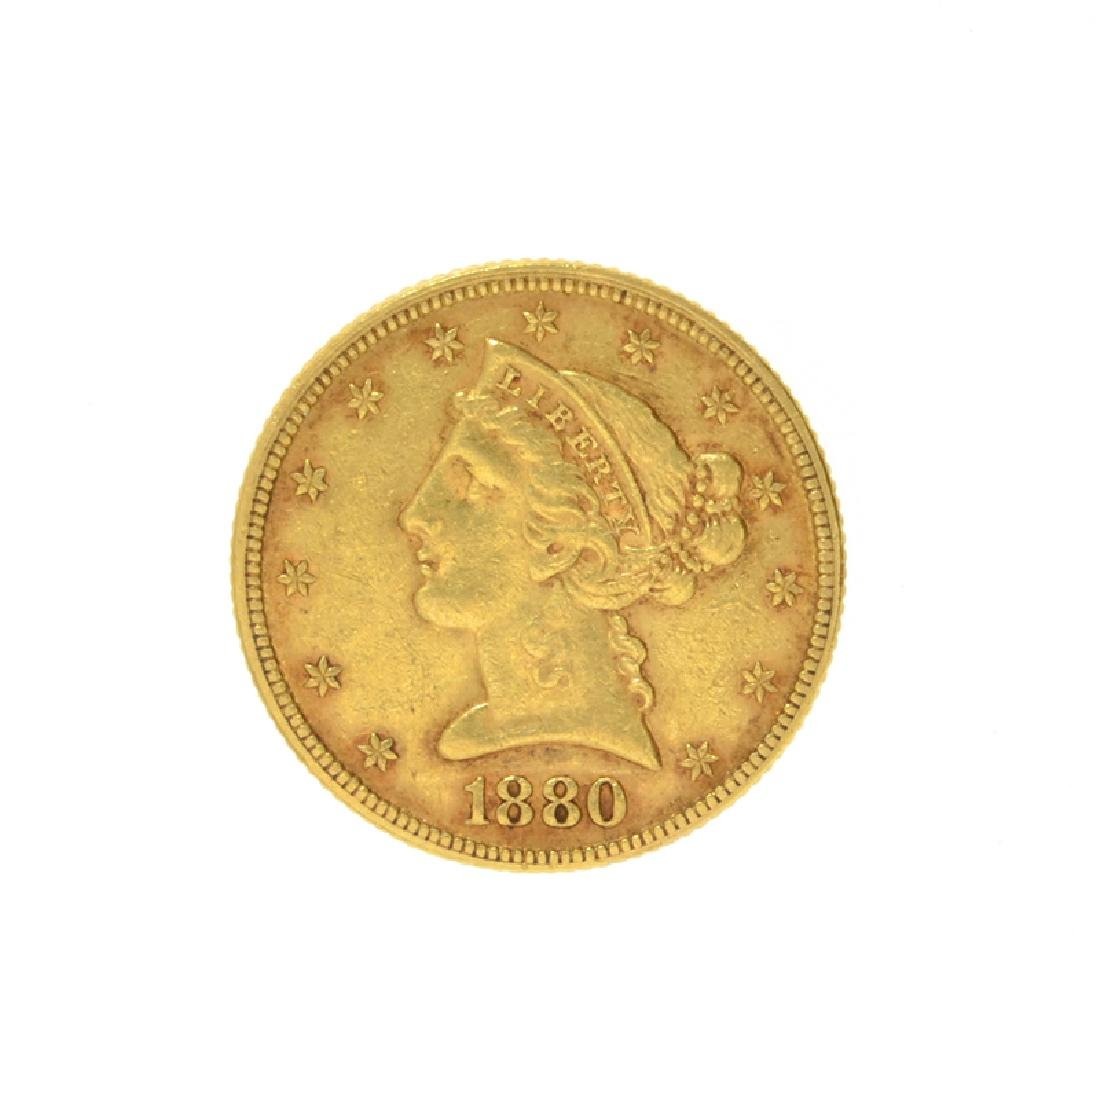 1880 $5 U.S. Liberty Head Gold Coin